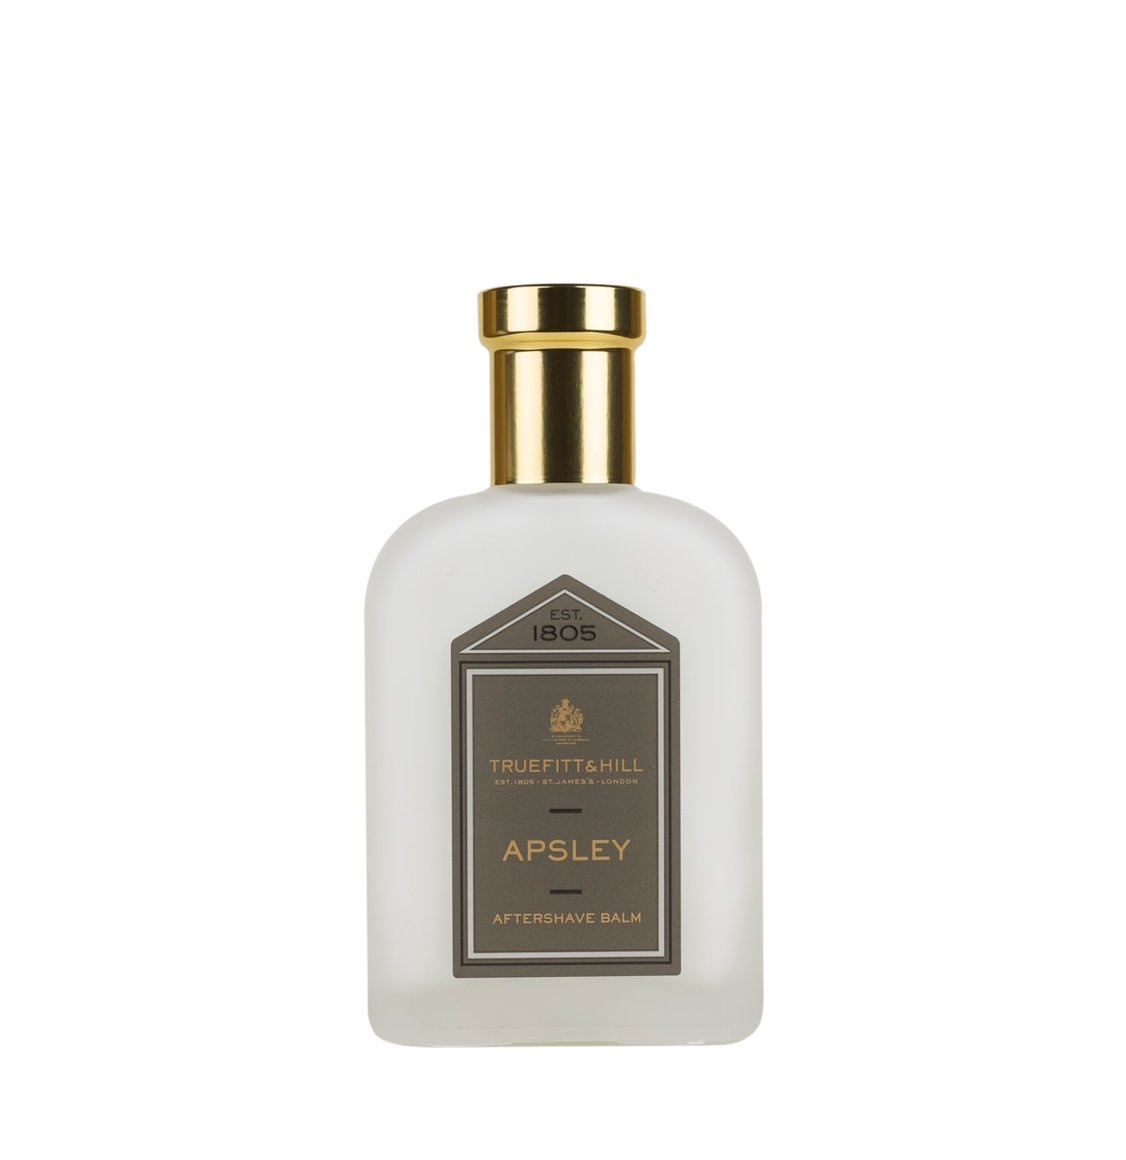 Truefitt And Hill Apsley Aftershave Balm 100ml